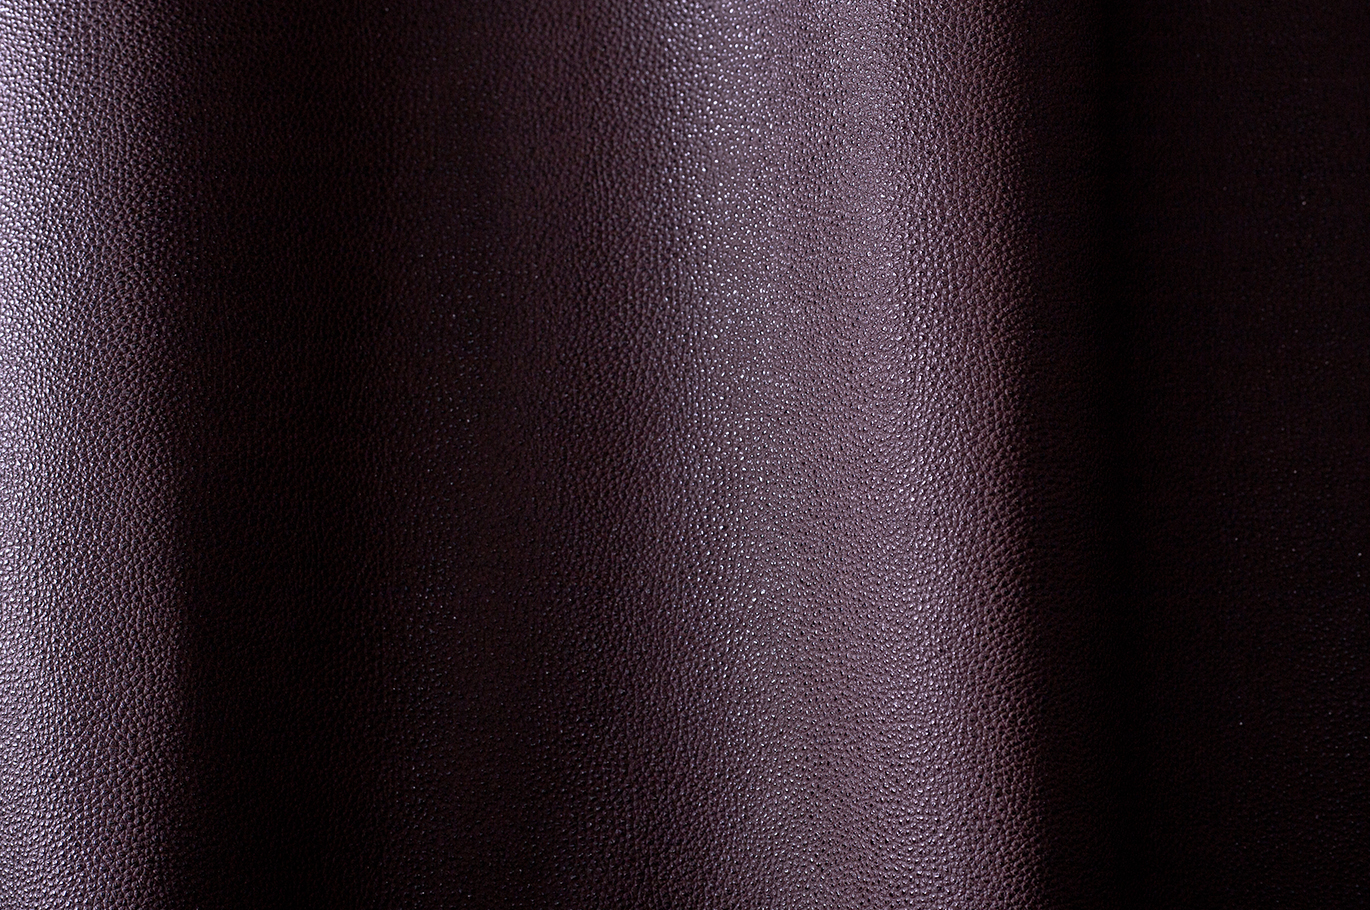 EMBOSSED BROWN